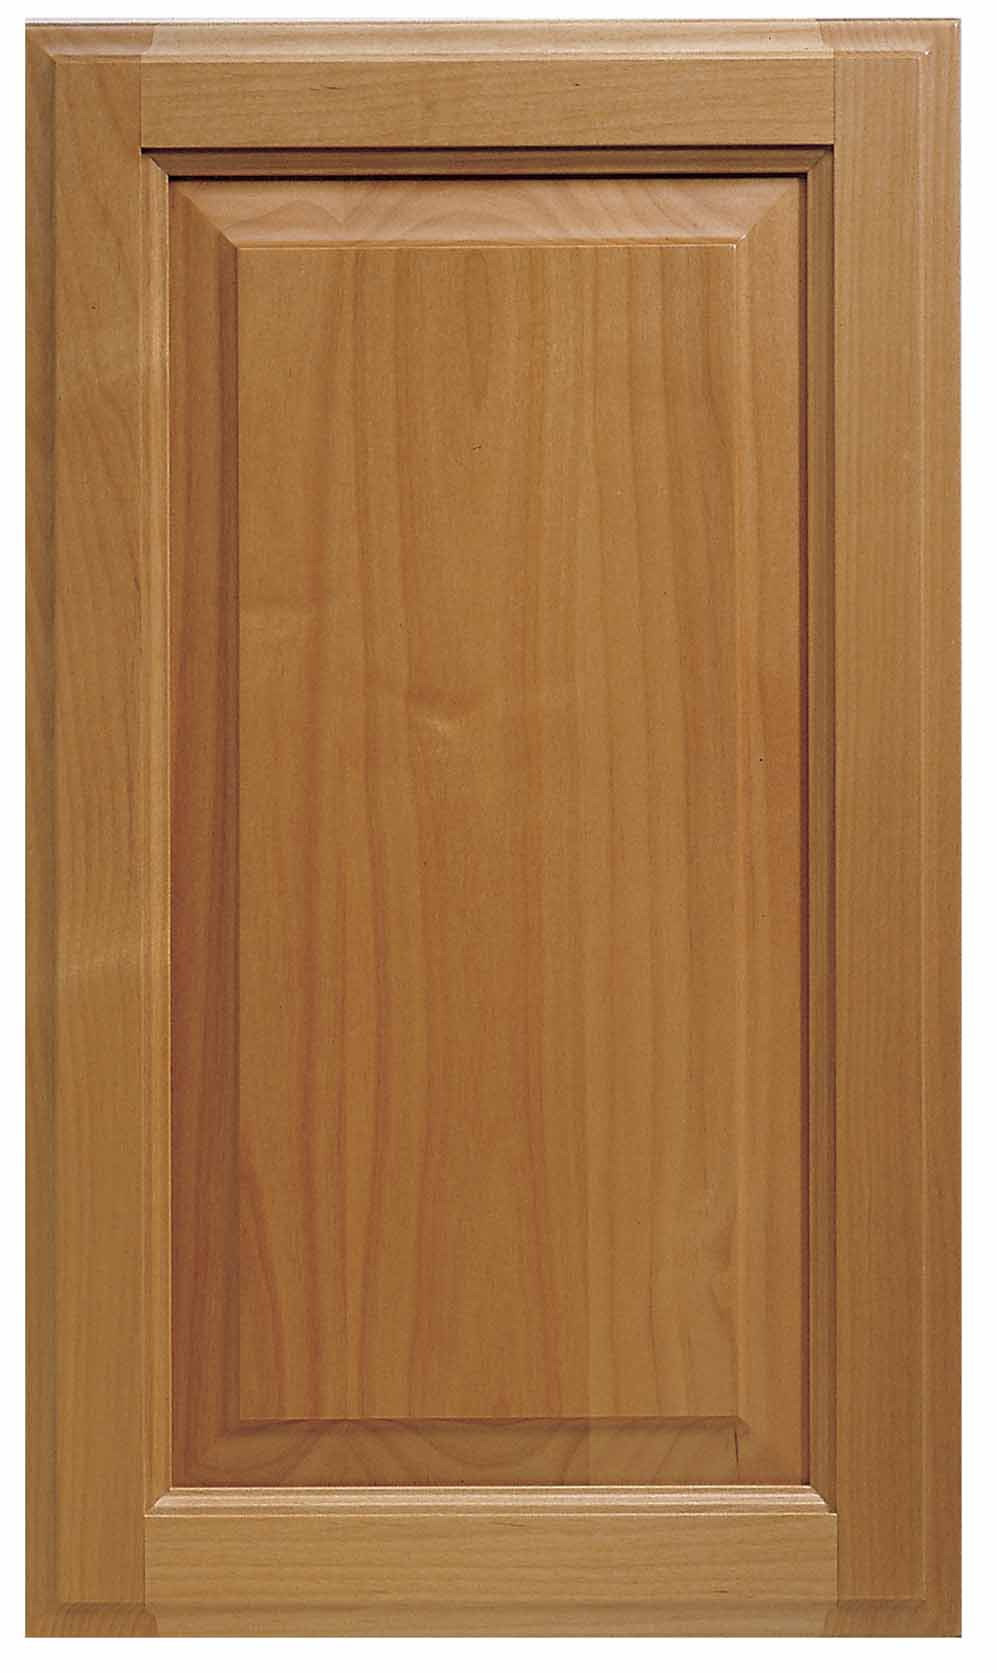 replace bathroom cabinet doors onlykitchen cabinet doors drawers and boxes cabinet now